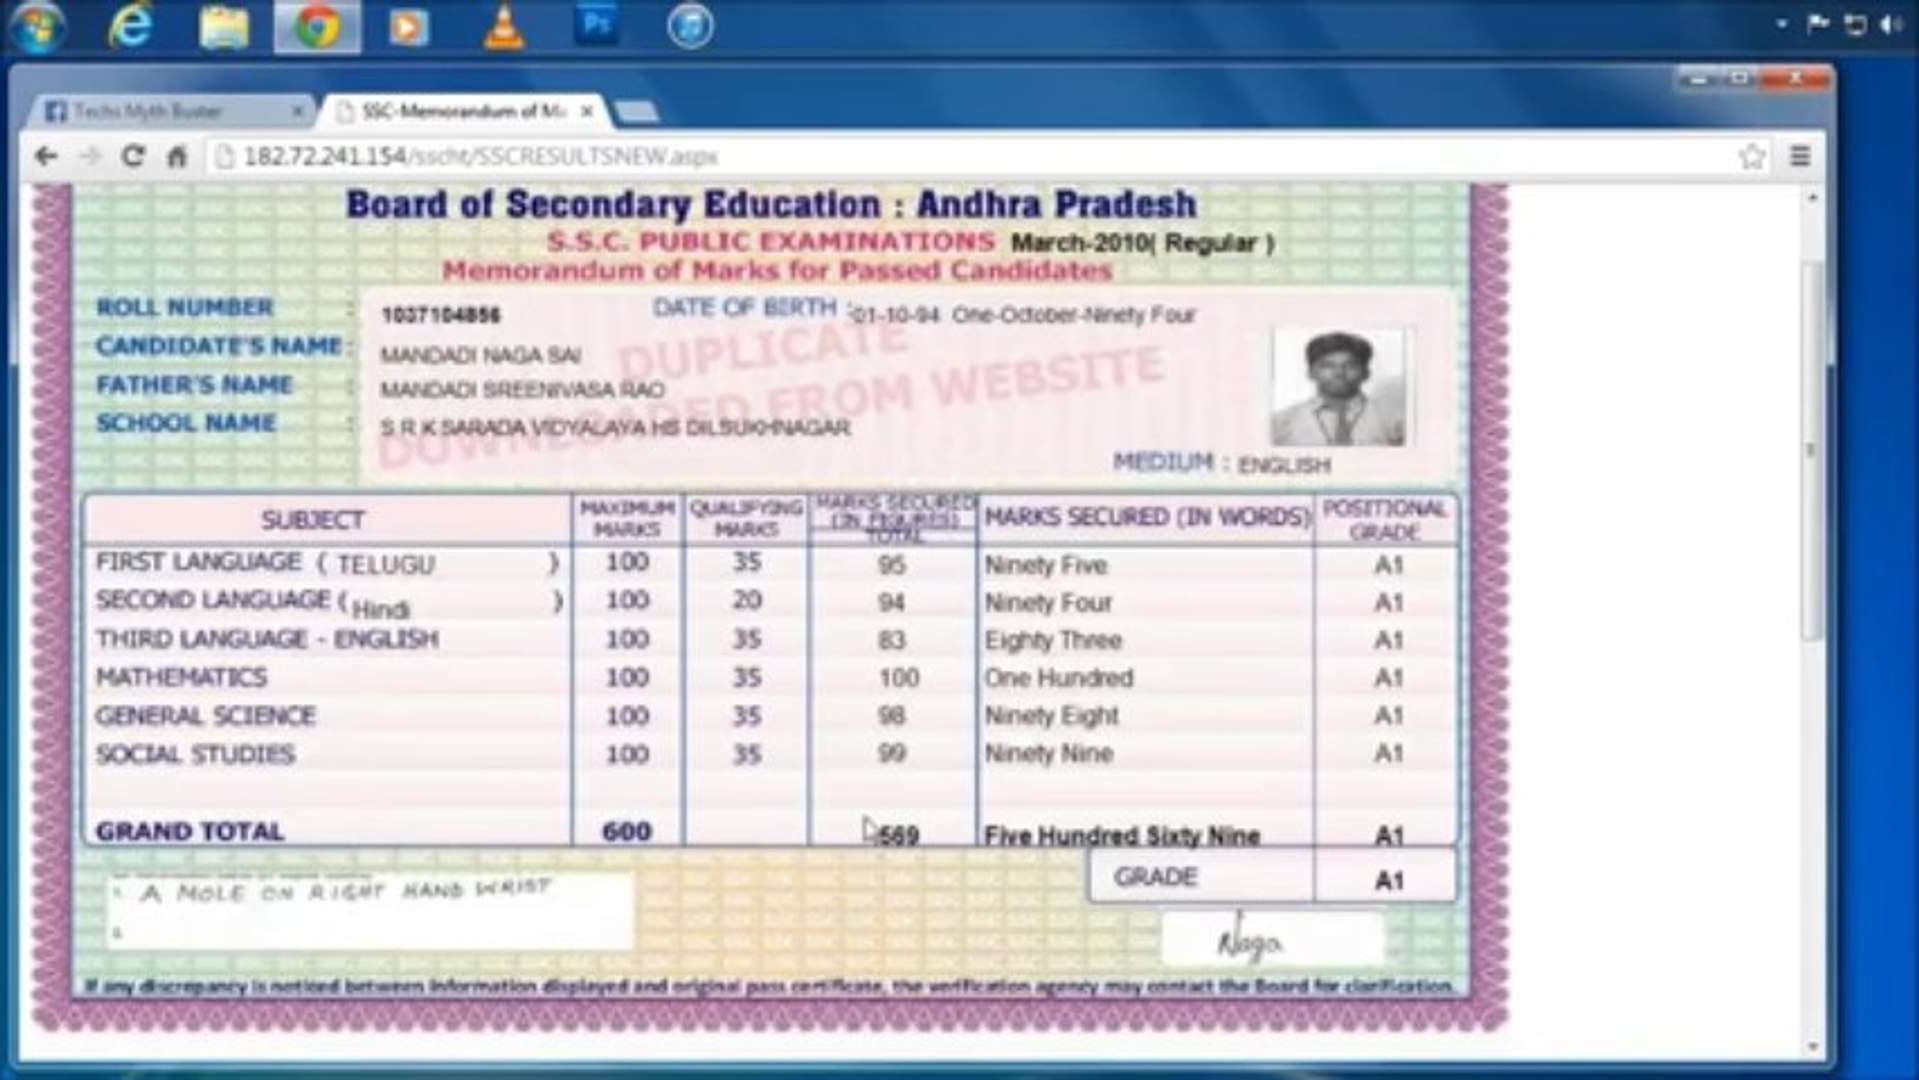 Download And View SSC (10th Class) Certificate From Online Free